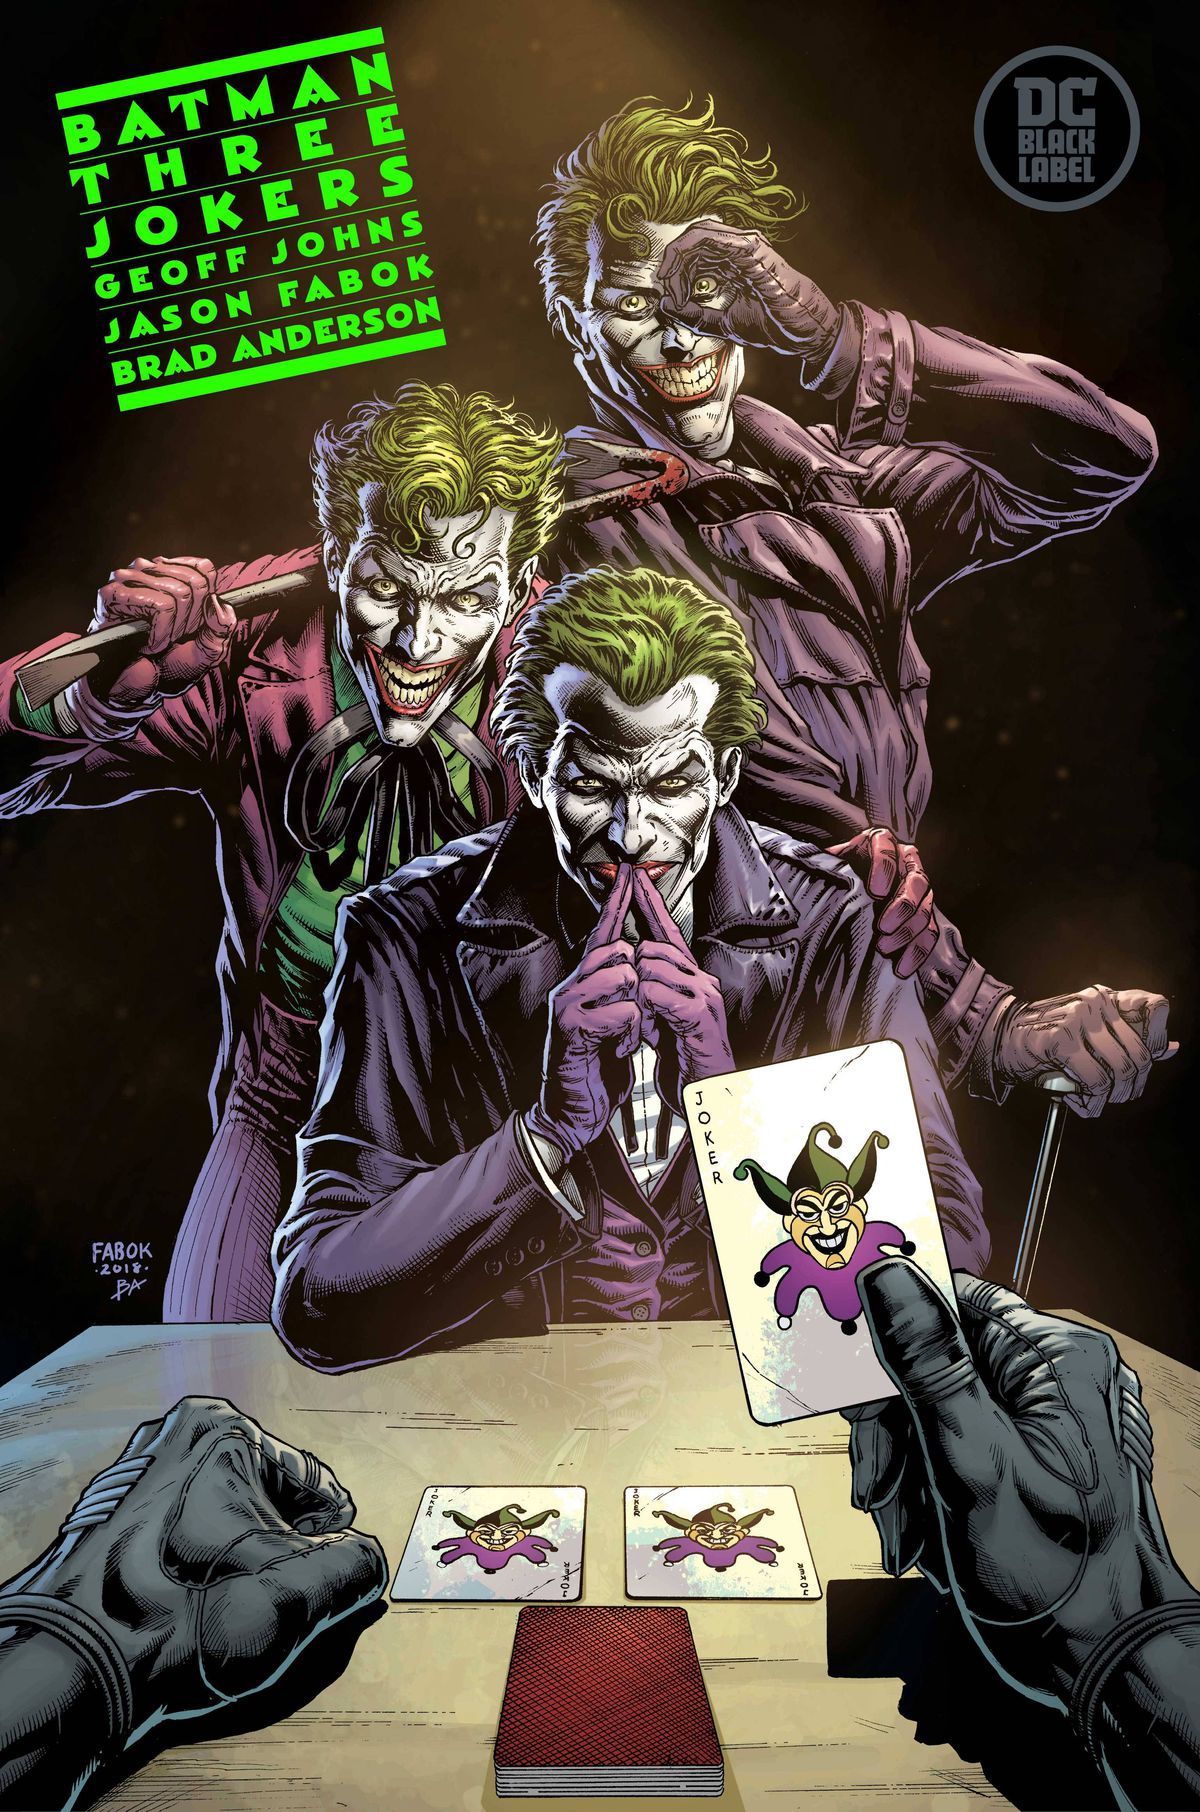 Three versions of the Joker stand at one end of a table. In the foreground, Batman's gloved hands pull three jokers from a deck of cards. Promotional art for Batman: Three Jokers, DC Comics (2020).